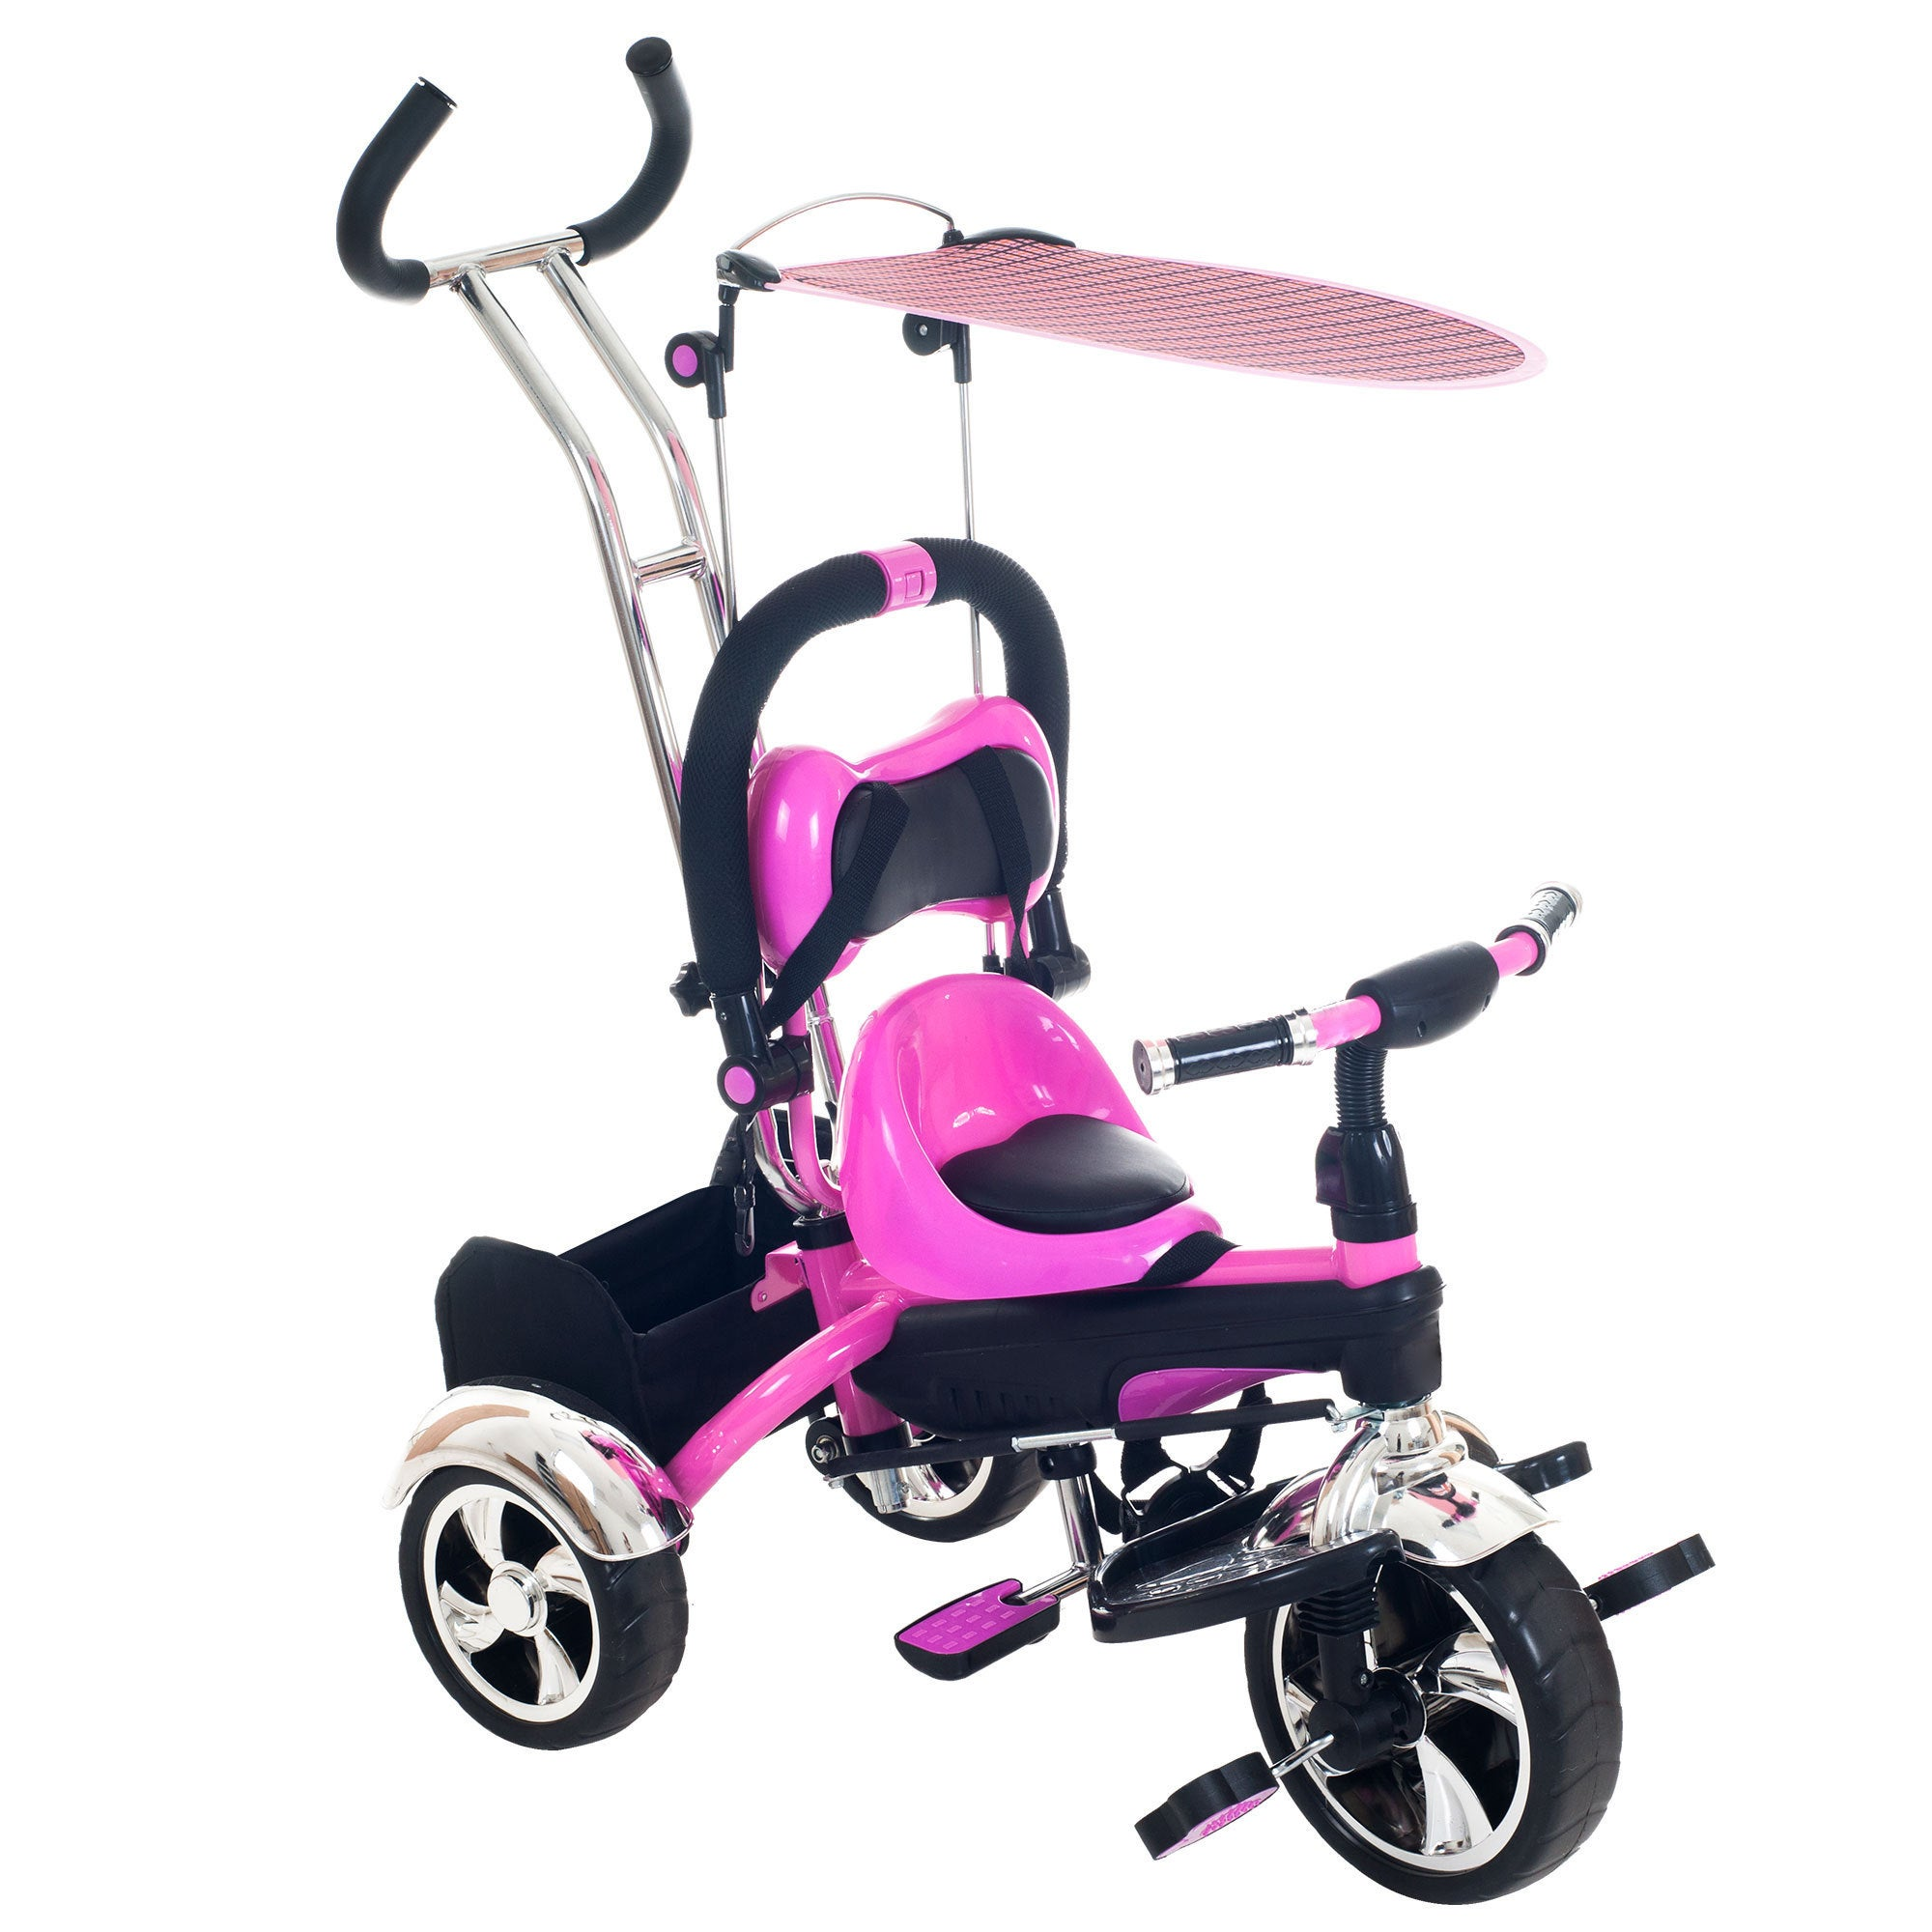 Lil' Rider Tricycle Stroller Bike, 3-1 Stroller with Remo...